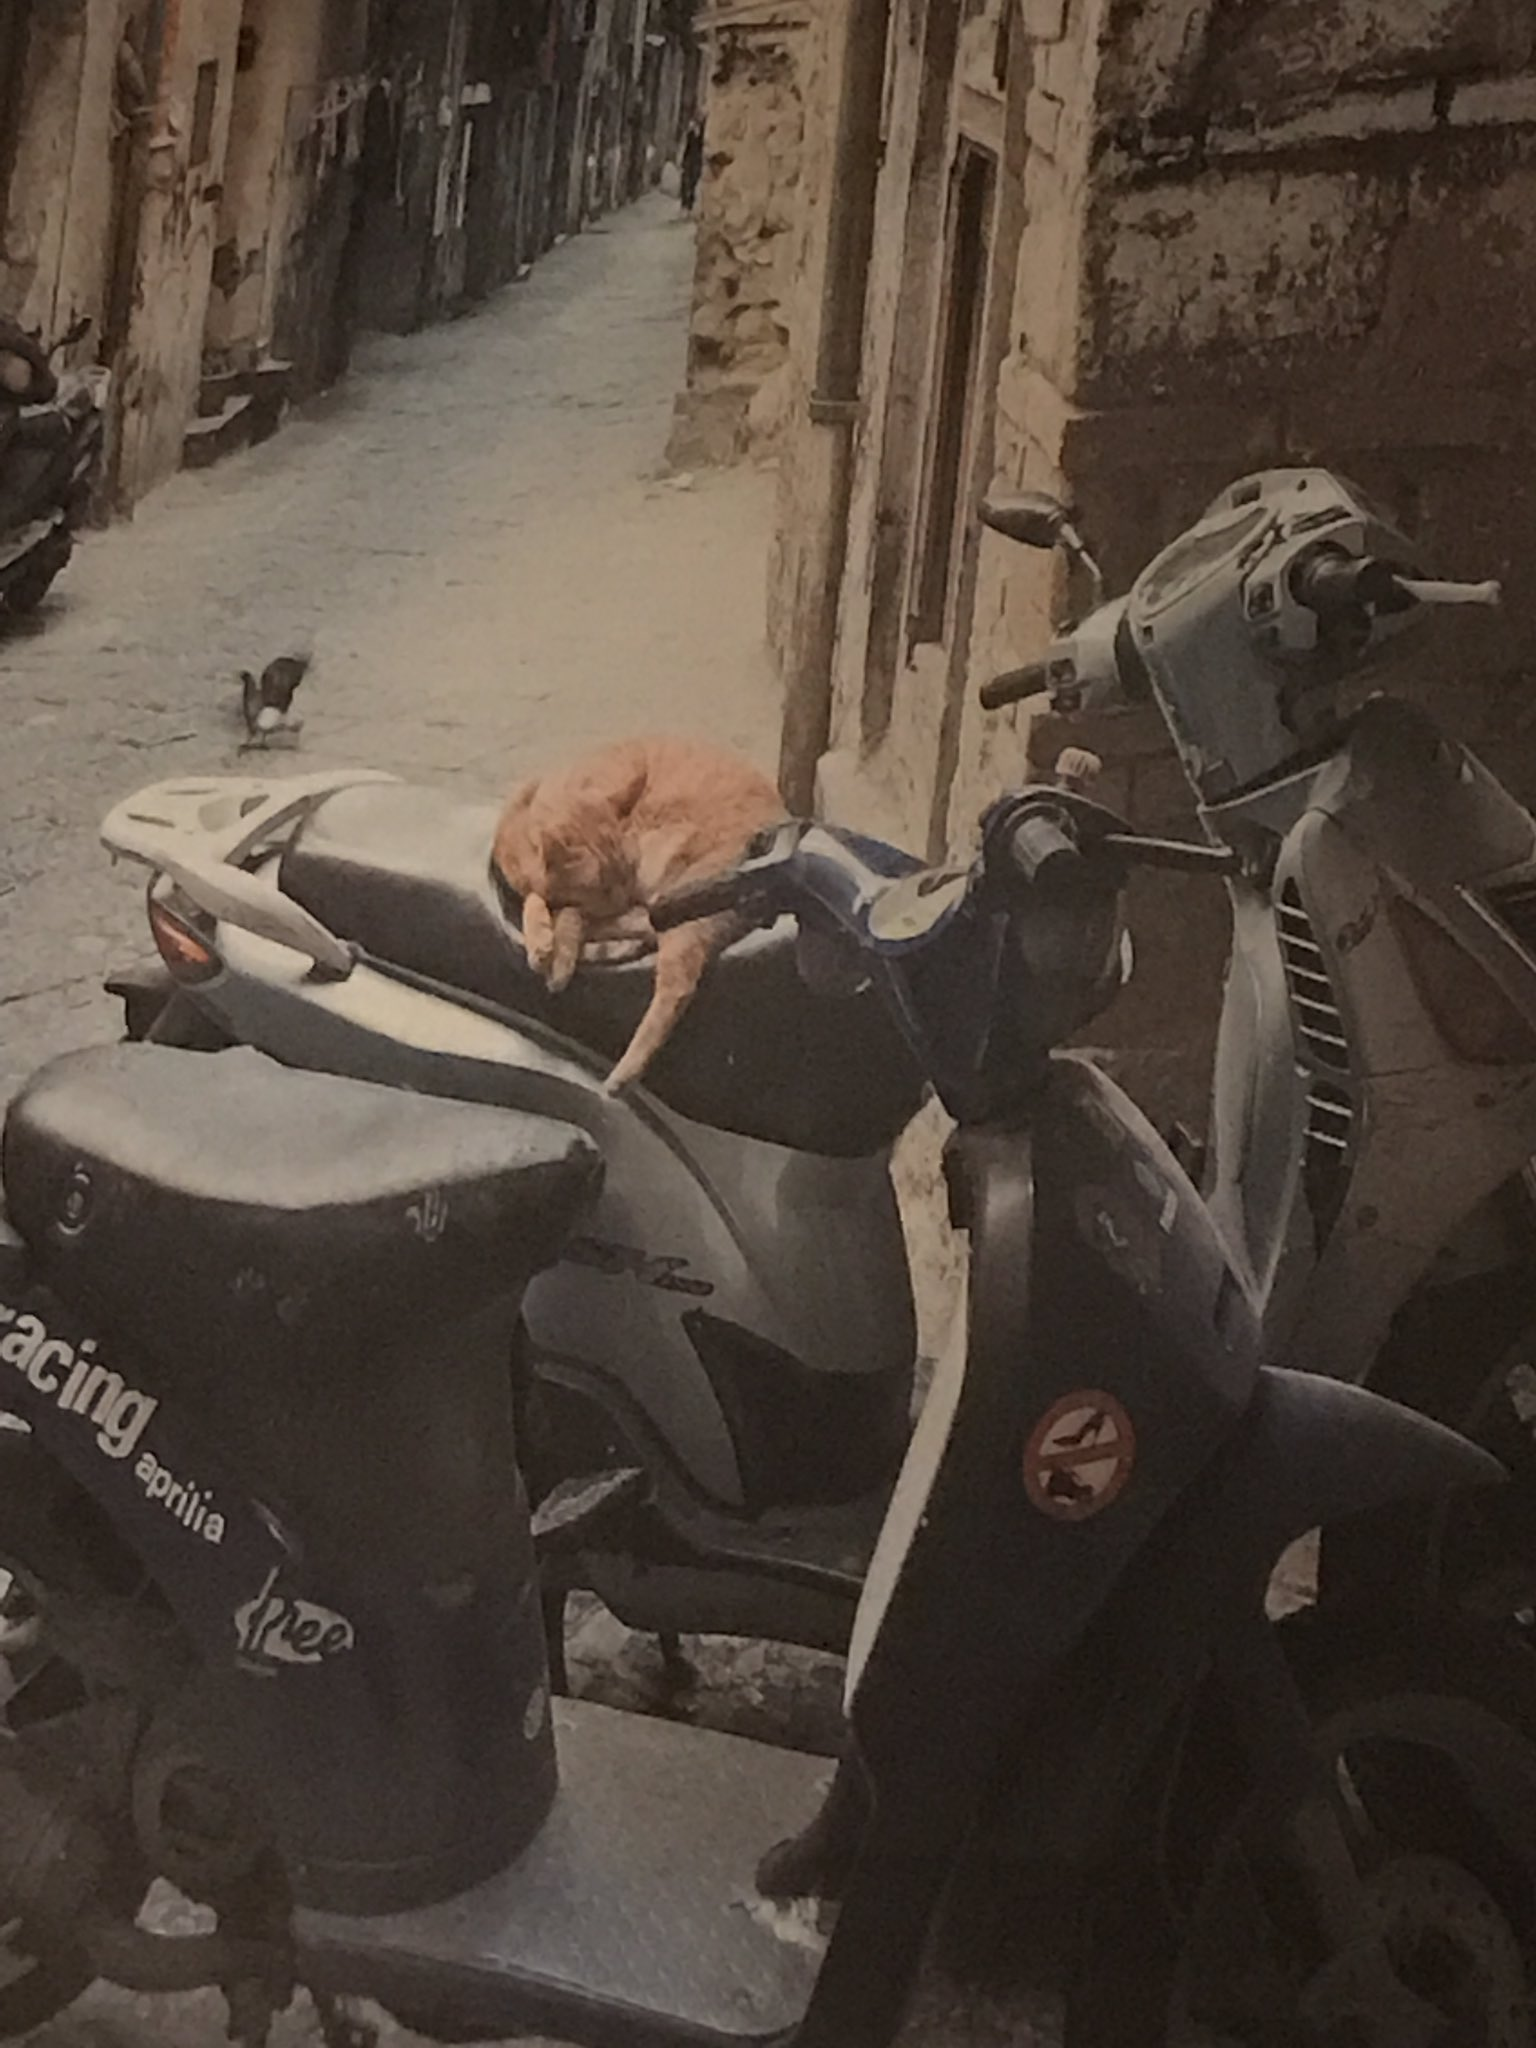 In Pizzaria Vetri and saw this picture on the wall and wondered if the cat was just resting up for the game tmrw night #rtc https://t.co/5KcQ7TbmL8